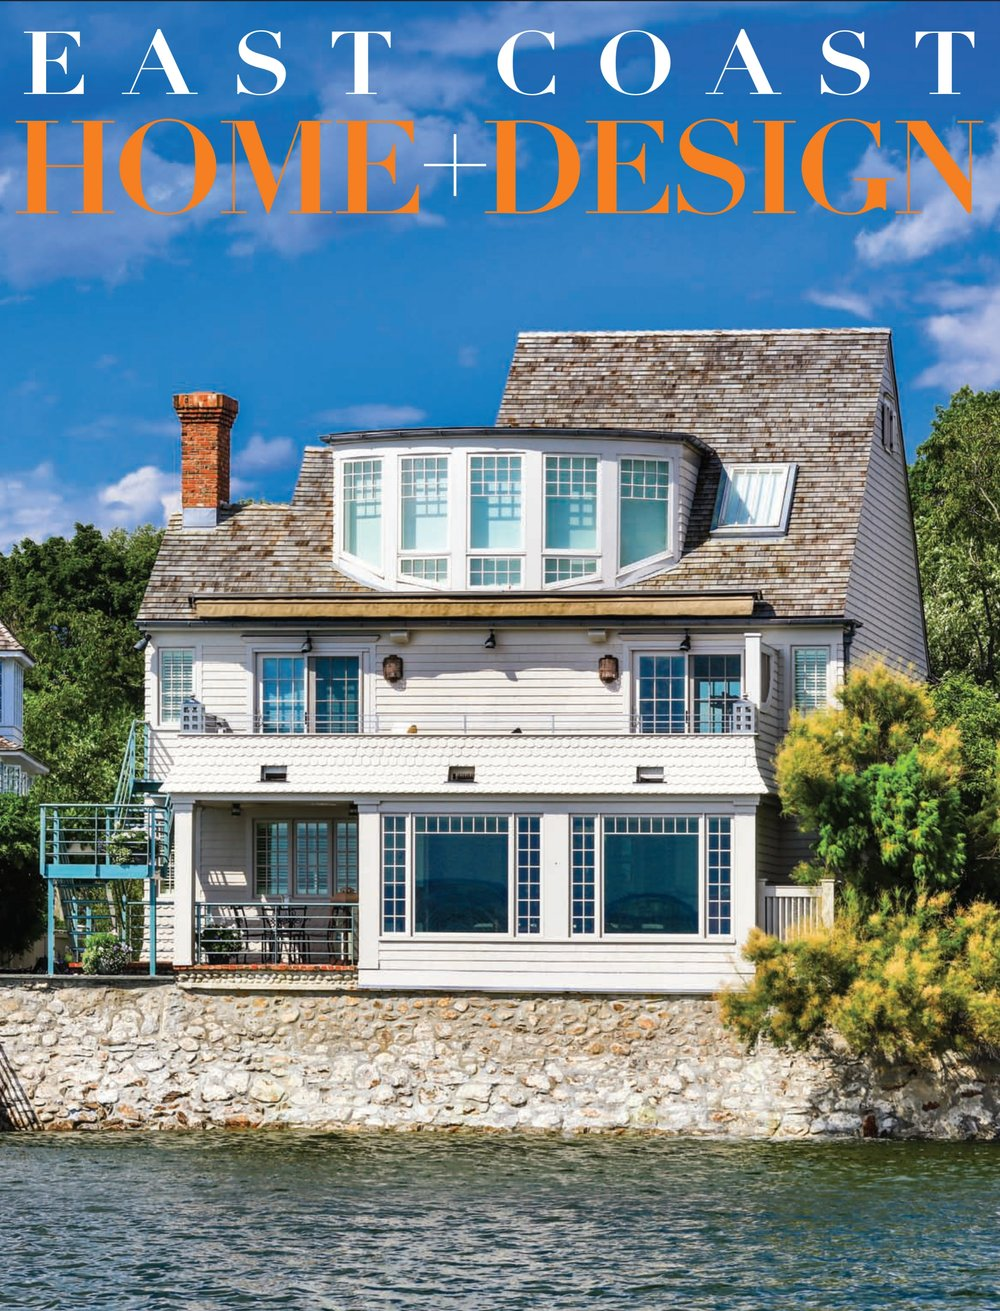 EAST COAST HOME DESIGN. MARCH 2016.